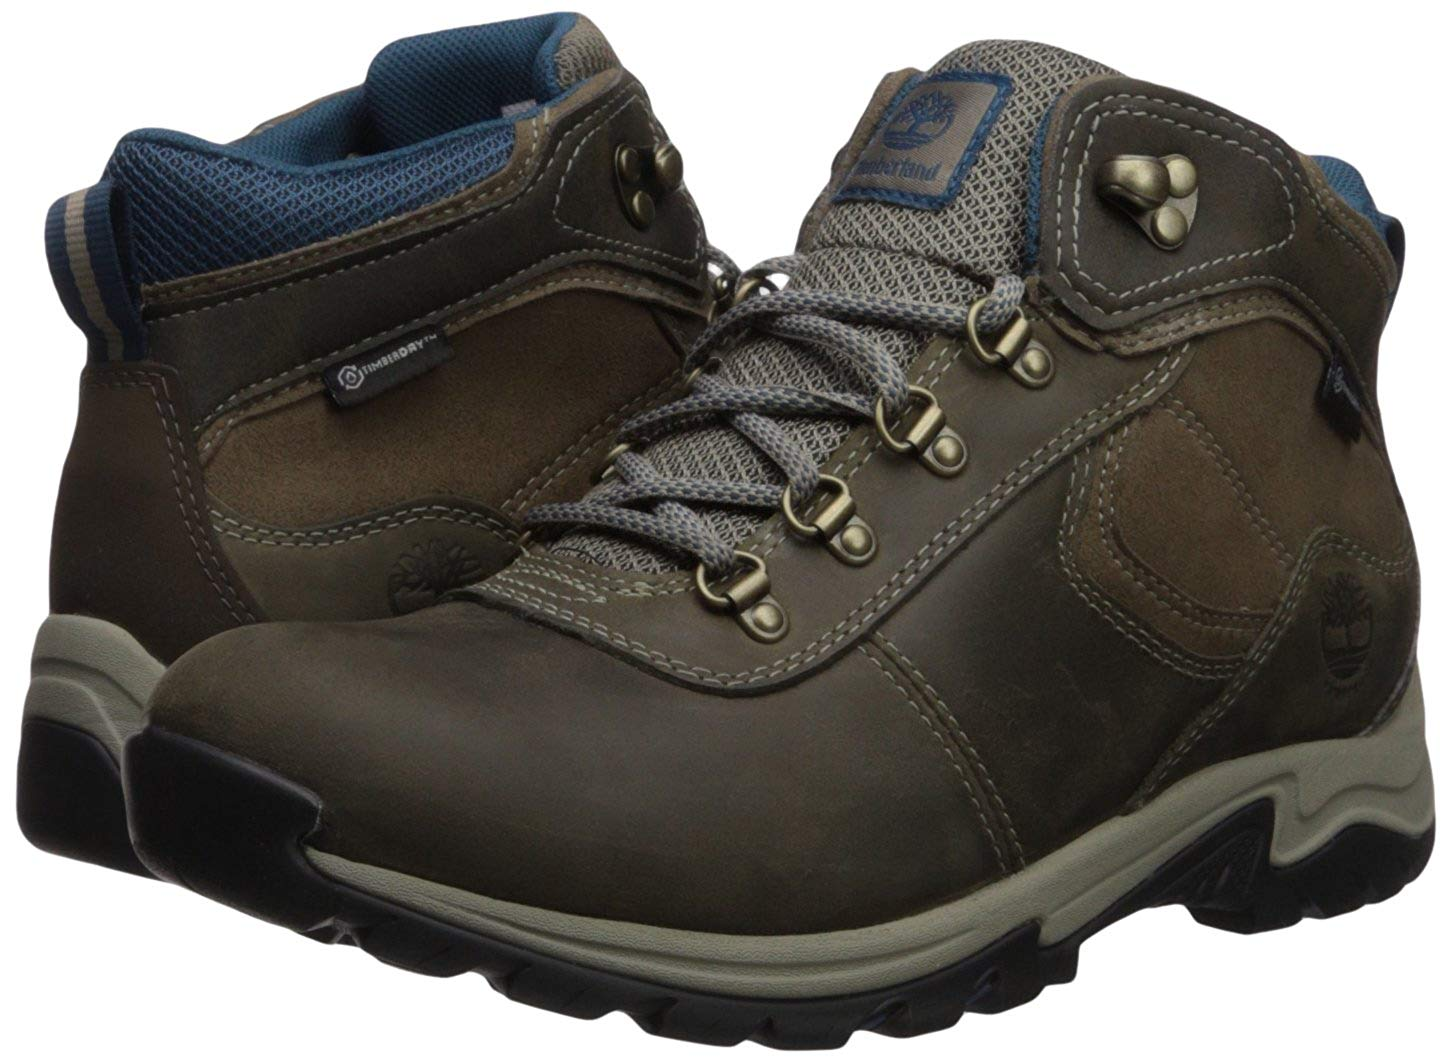 0966a993348 Timberland Mt. Maddsen Mid Leather WP Hiking Boots - Womens